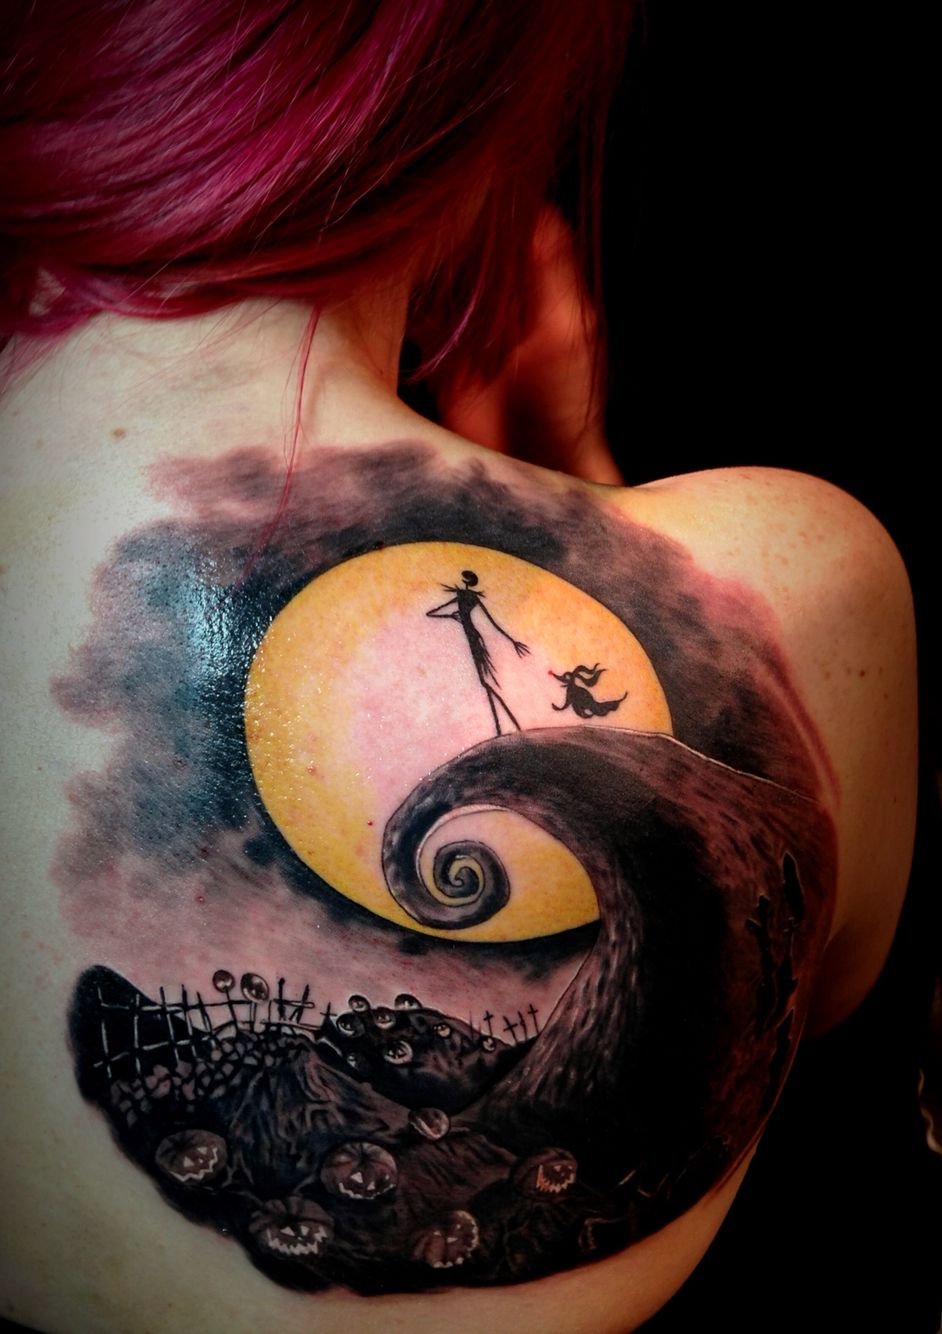 Cartoon tattoo designs on shoulder - Nightmare Before Christmas Tattoo I Would Probably Never Get A Cartoon As A Tattoo Even If I Love The Nightmare Before Christmas